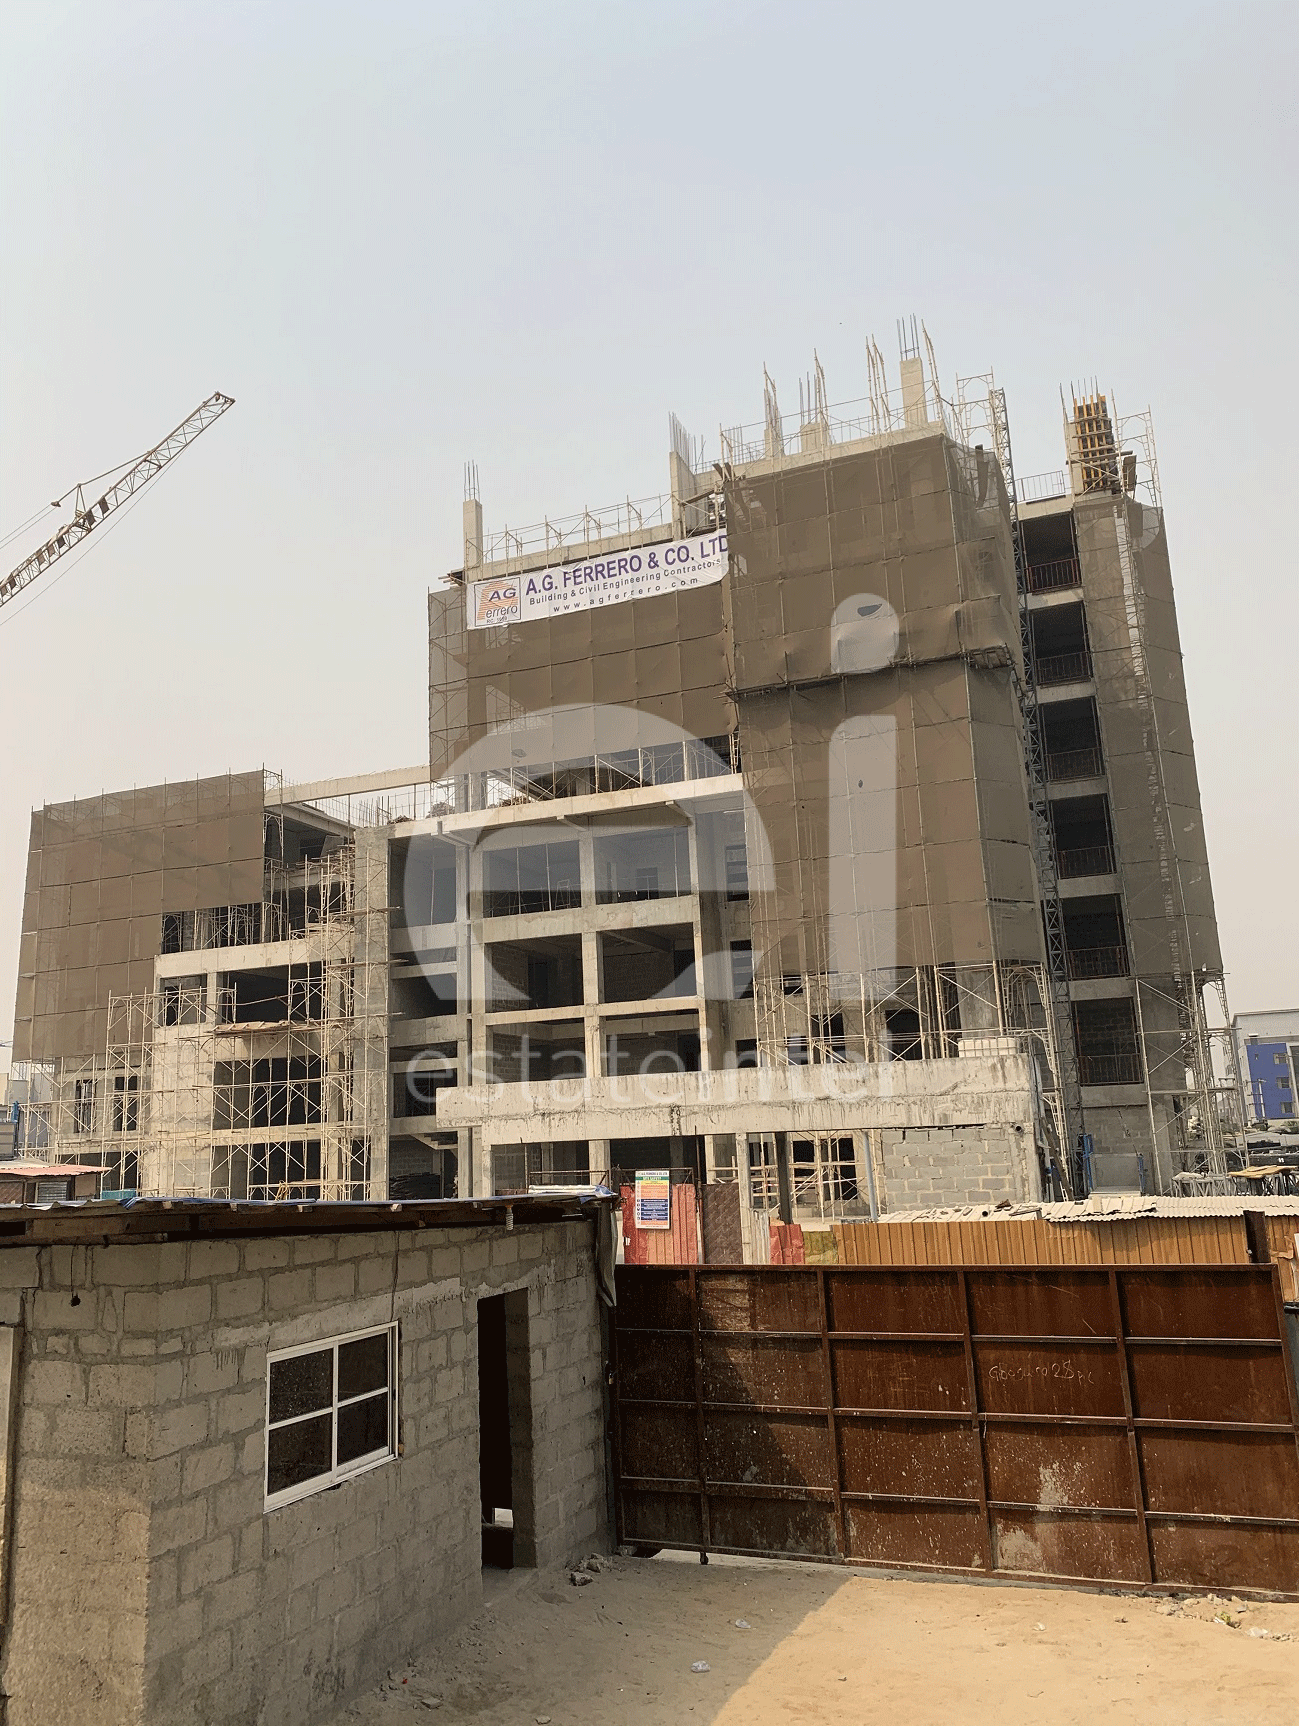 January 2020. Development: NDIC Lekki Training Office Building, Lekki Phase 1 - Lagos